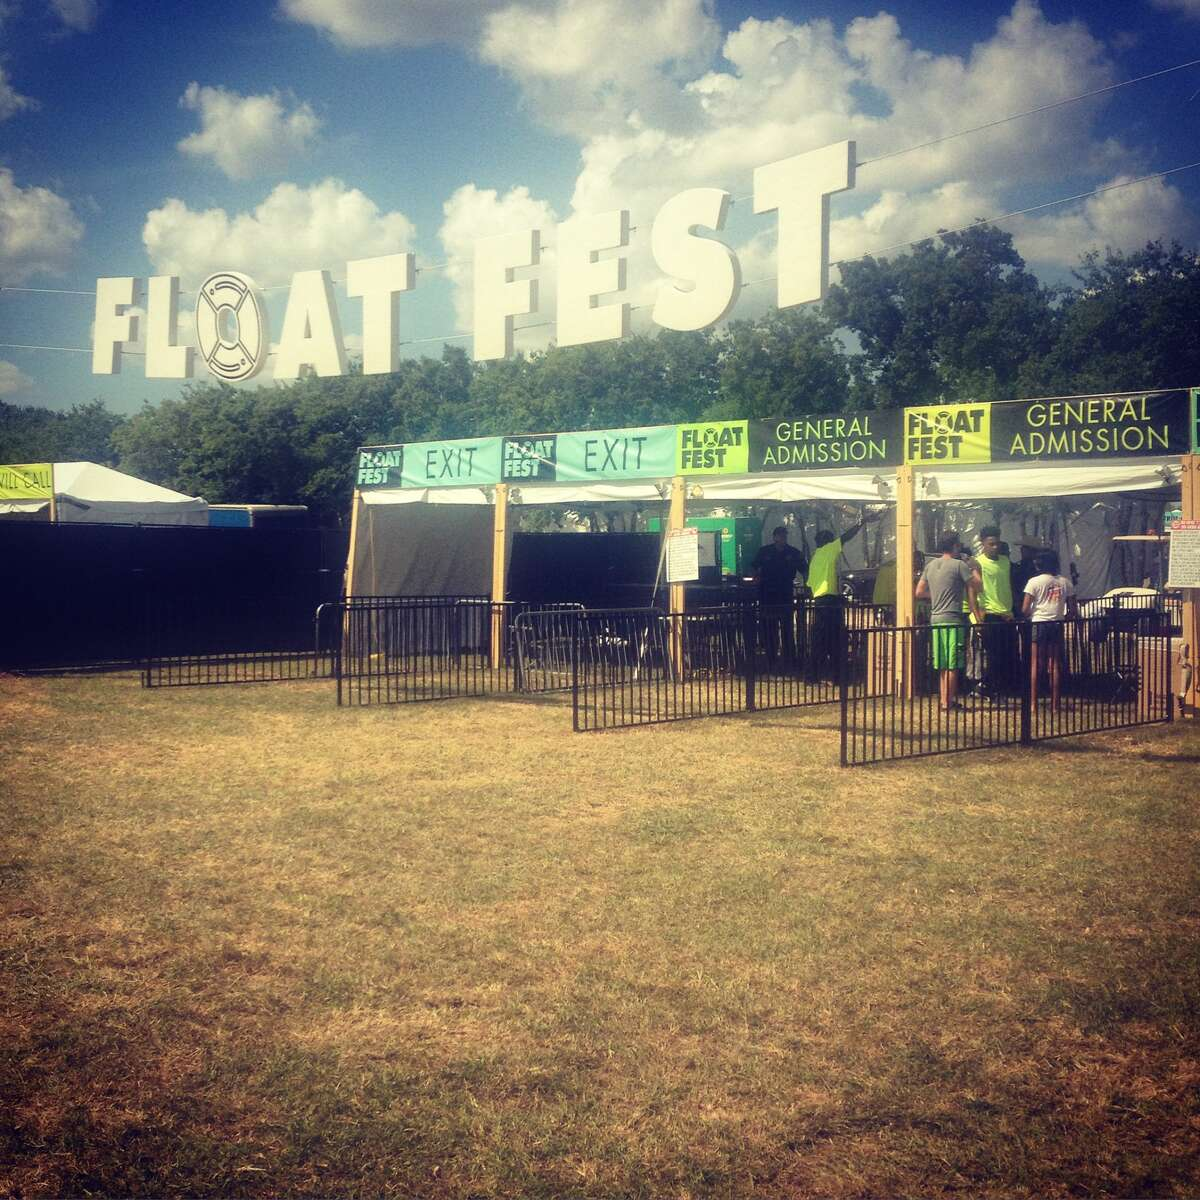 Welcome to Float Fest 2016! Don't be fooled by the empty queues. The lines were 200 people deep around noon.